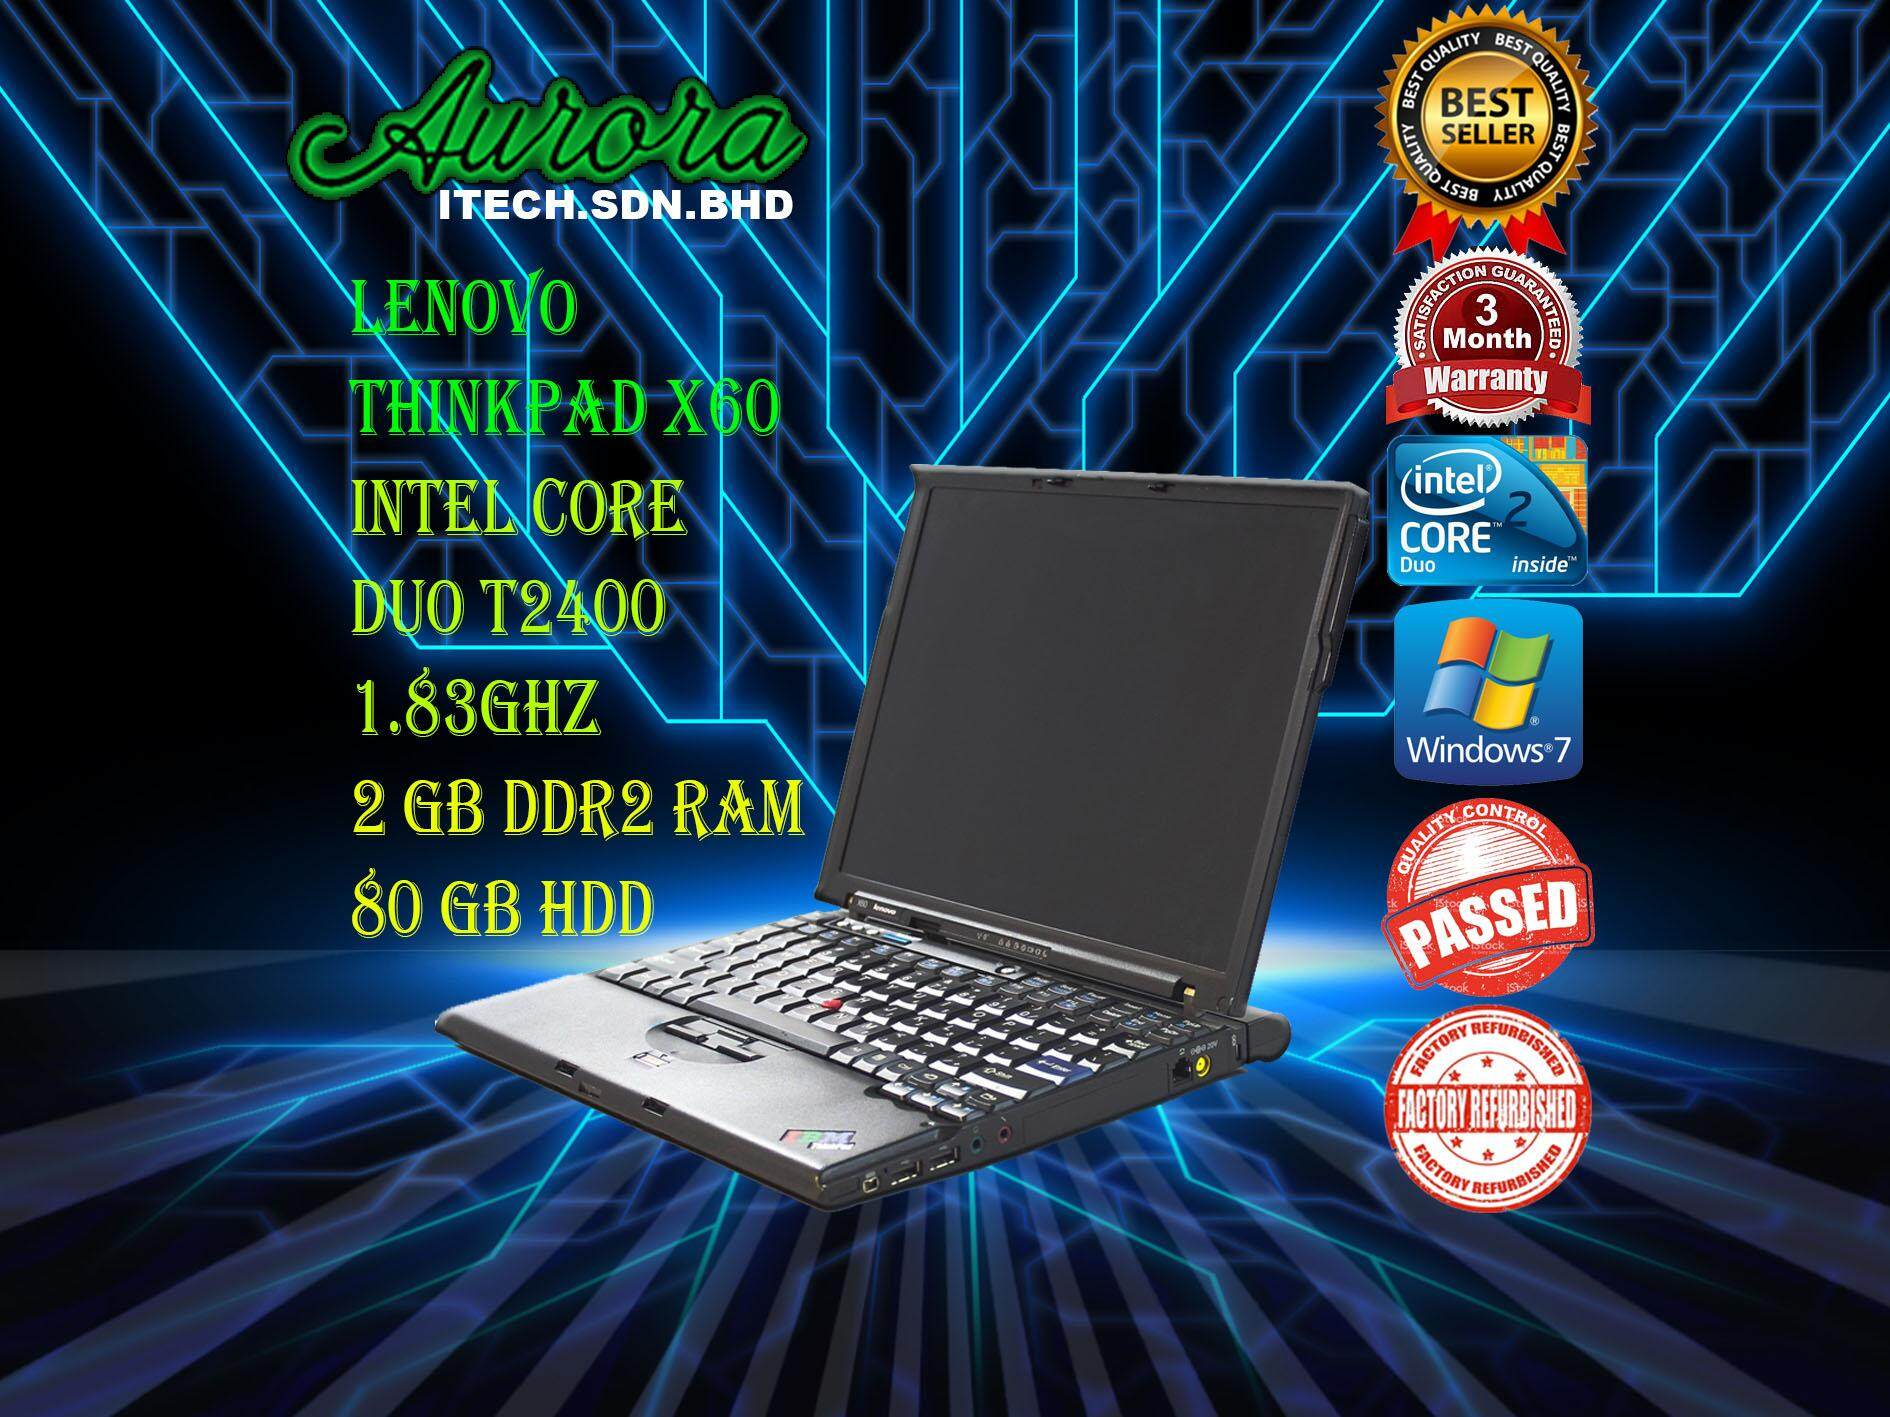 (REFURBISHED)Lenovo ThinkPad X60 / Intel Core Duo T2400 /2GB DDR2 RAM / 80GB HDD / 3 Month Warranty,Free Mouse Malaysia